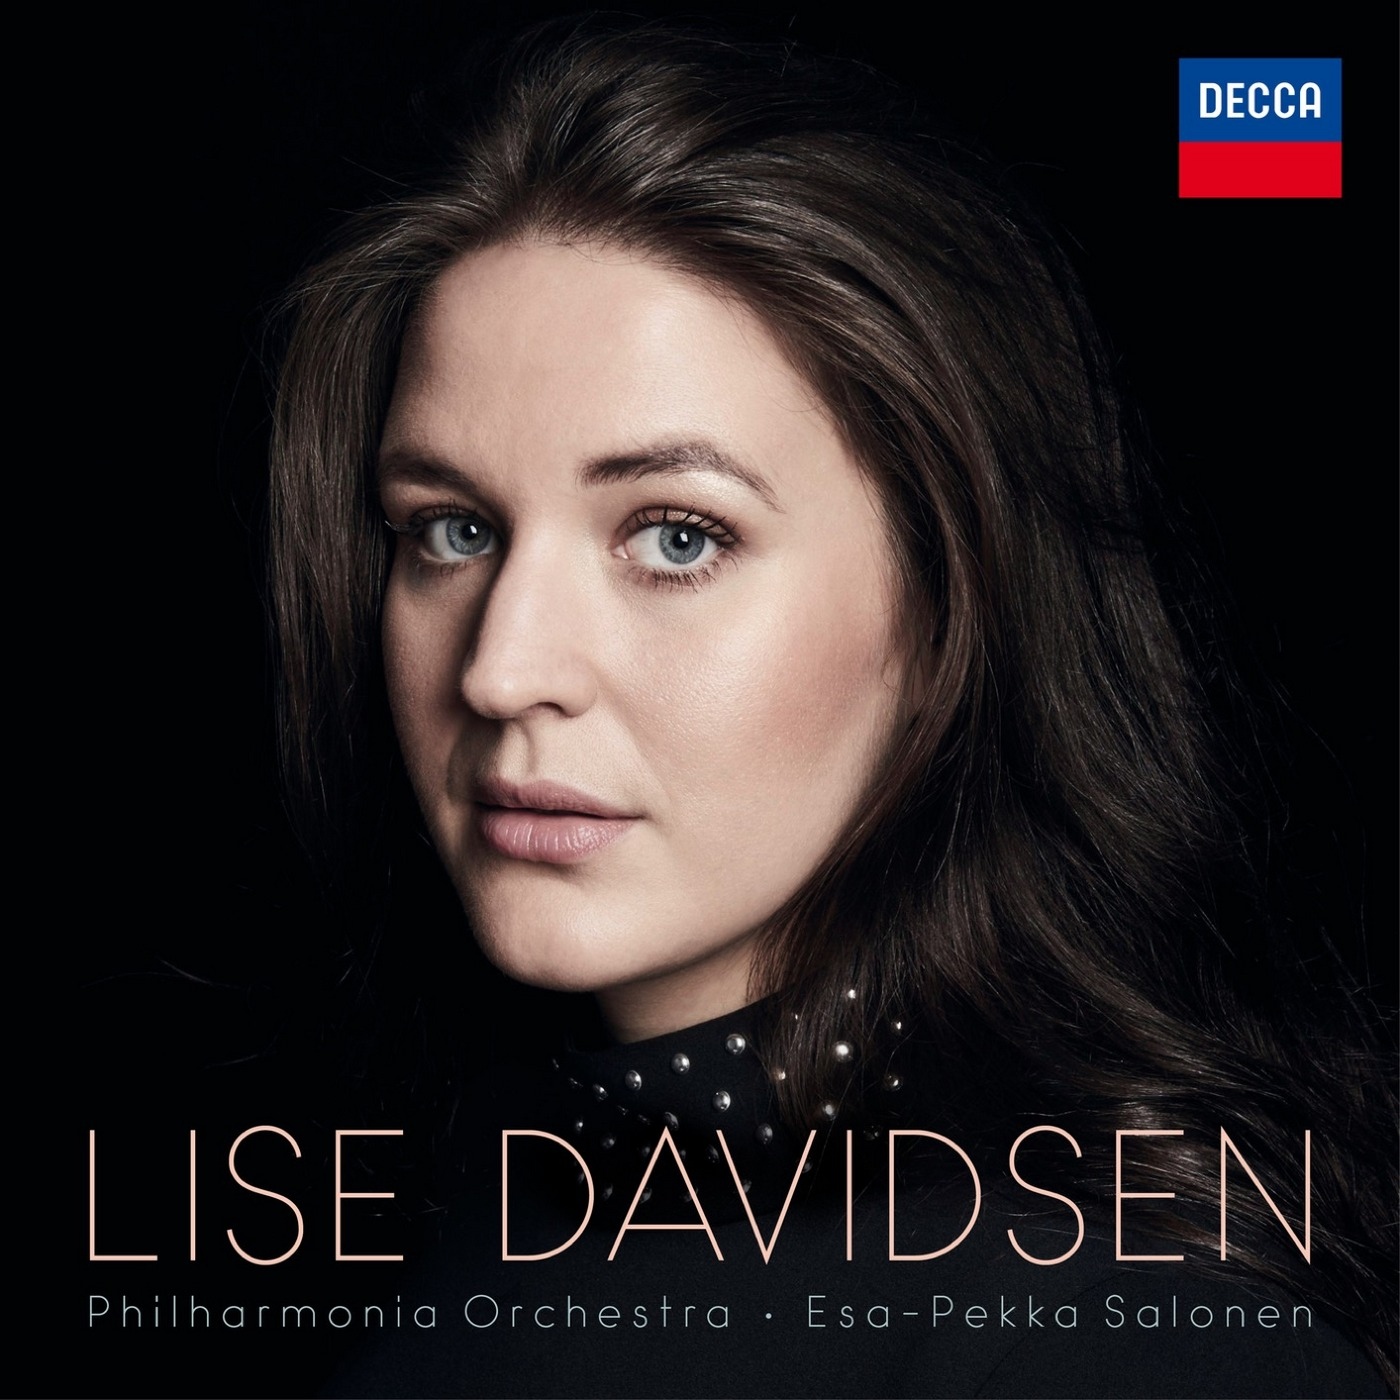 IN REVIEW: LISE DAVIDSEN SINGS WAGNER & STRAUSS (Decca 483 4883)